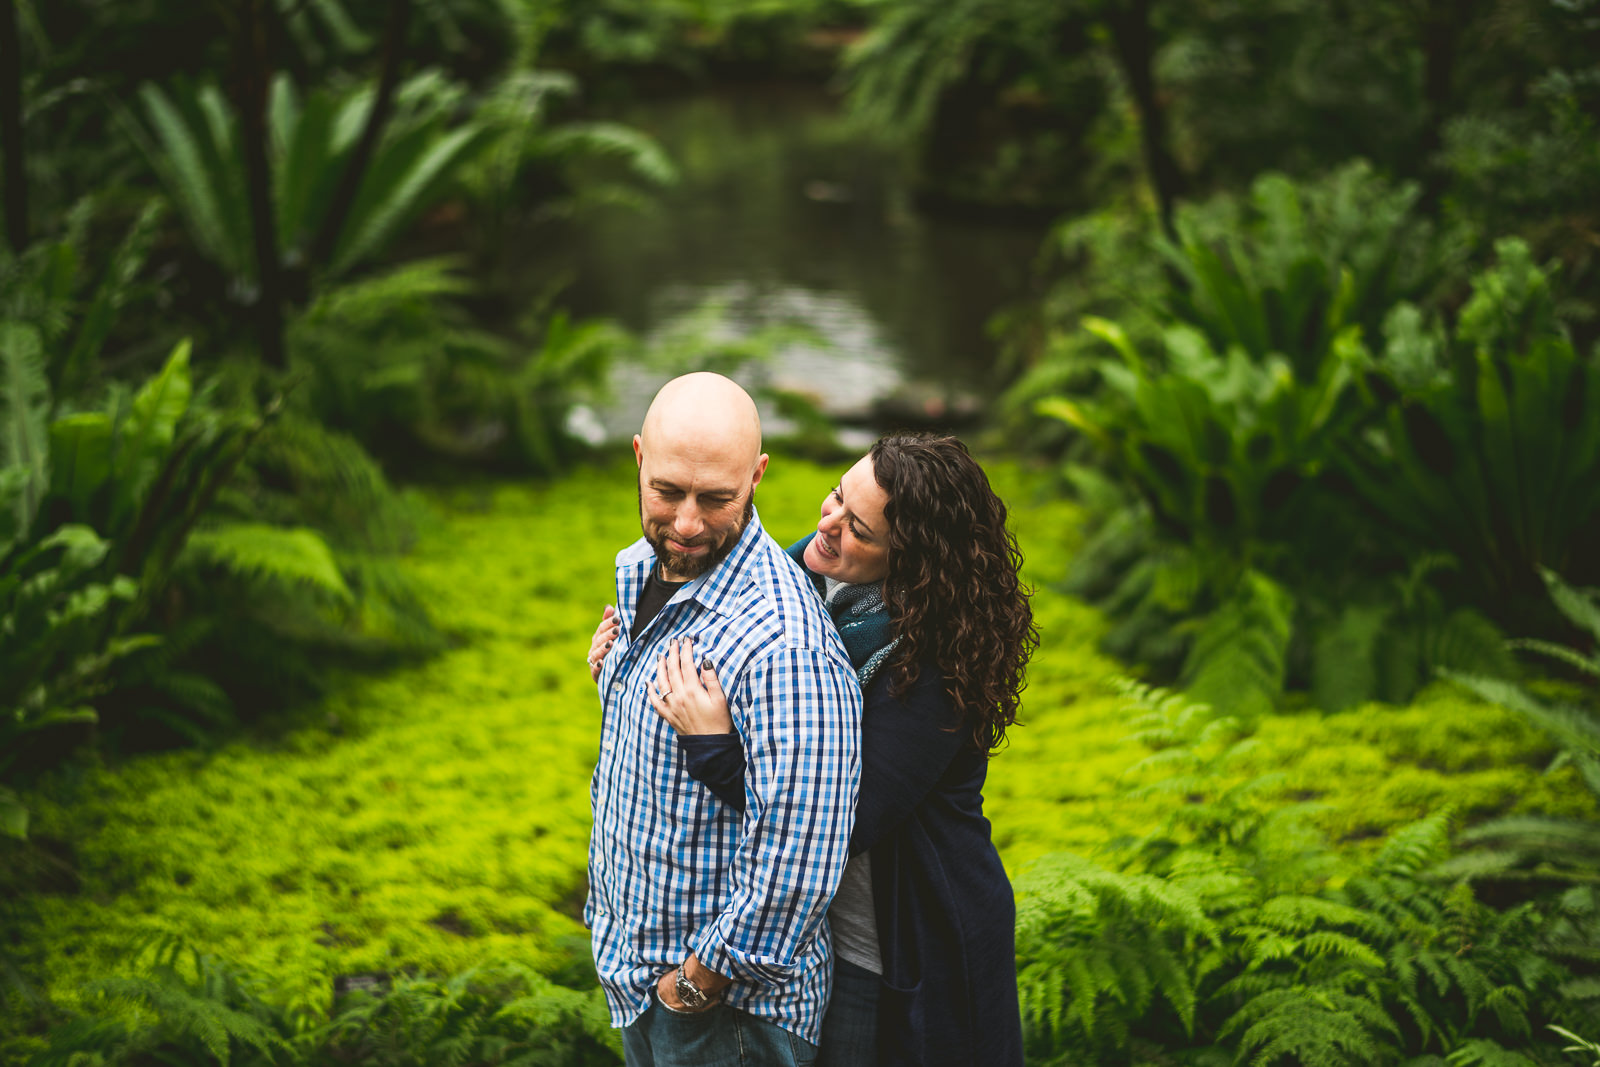 Jen + Bob // Garfield Park Conservatory Engagement Photos